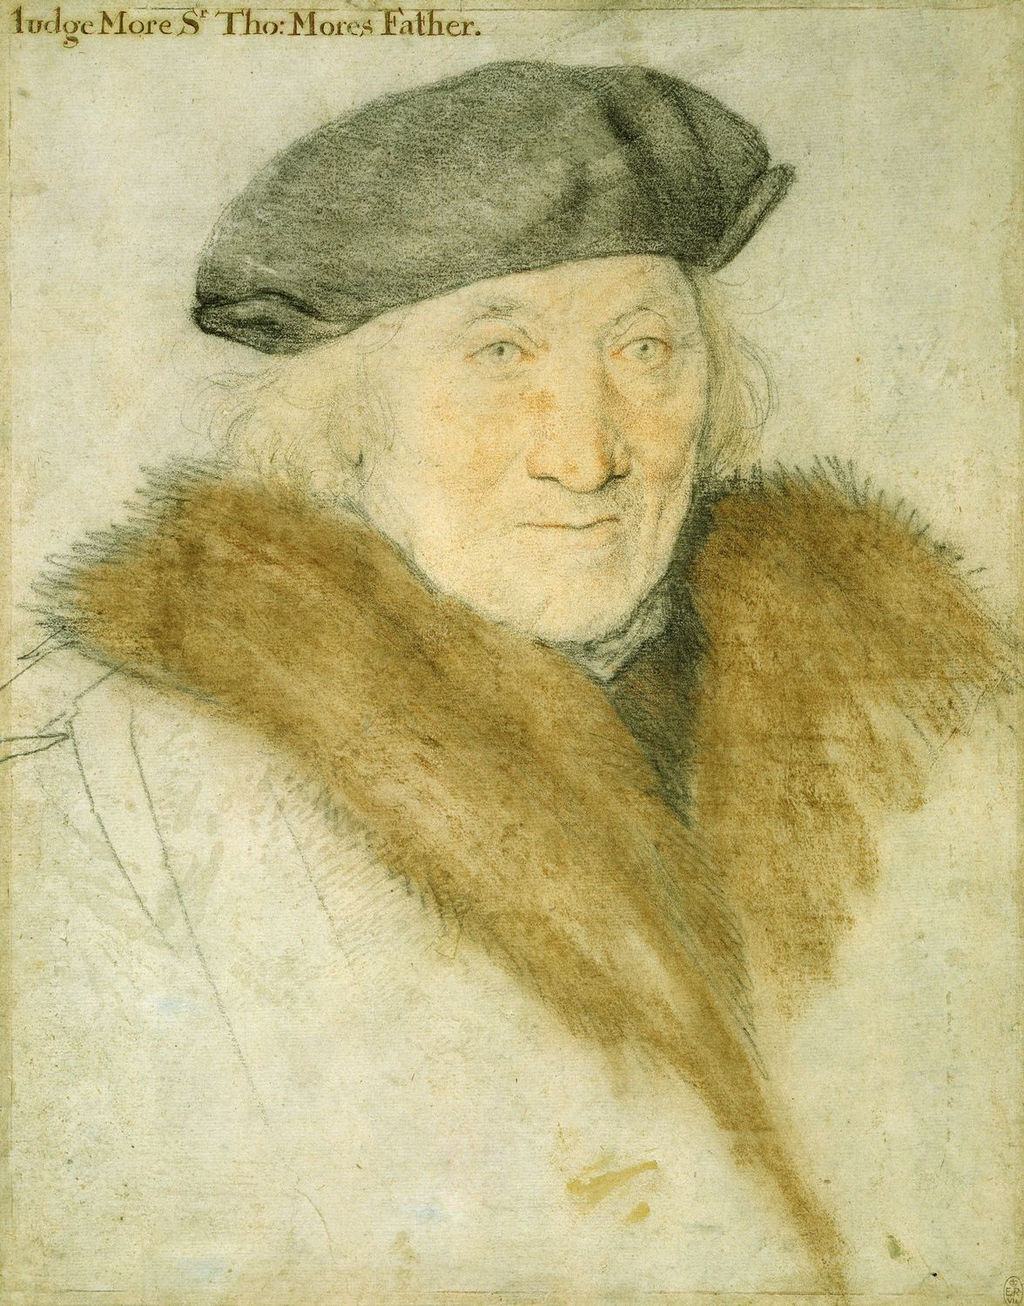 Scan of a painting of Sir John More by Hans Holbein the Younger Hans Holbein [Public domain], via Wikimedia Commons